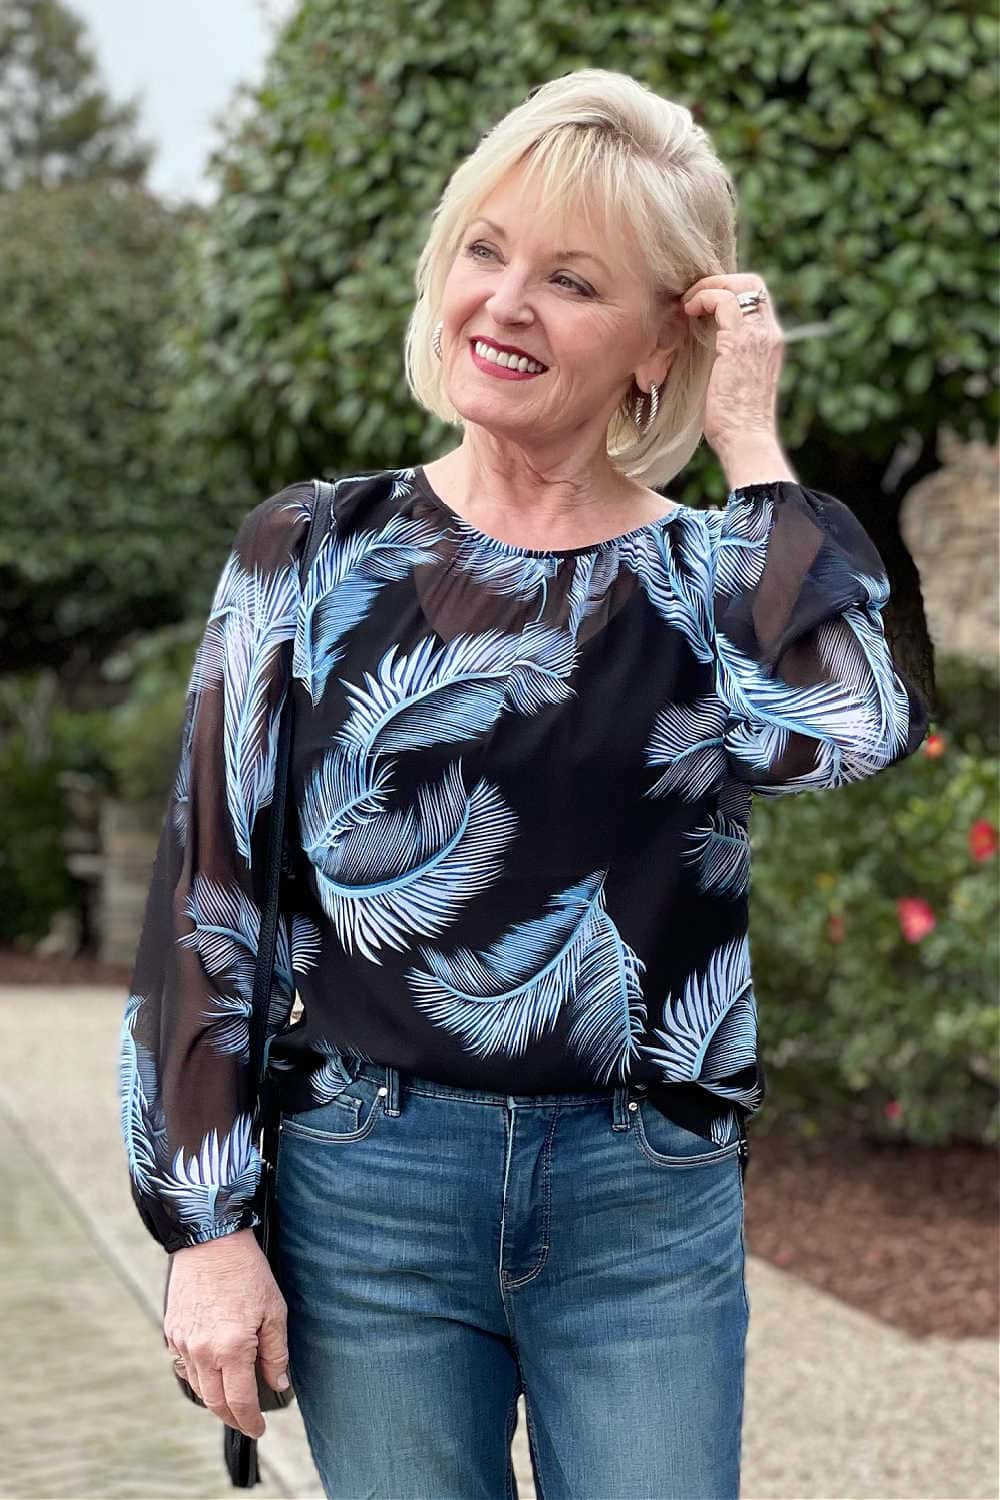 over 50 woman wearing sheer blouse with feather pattern